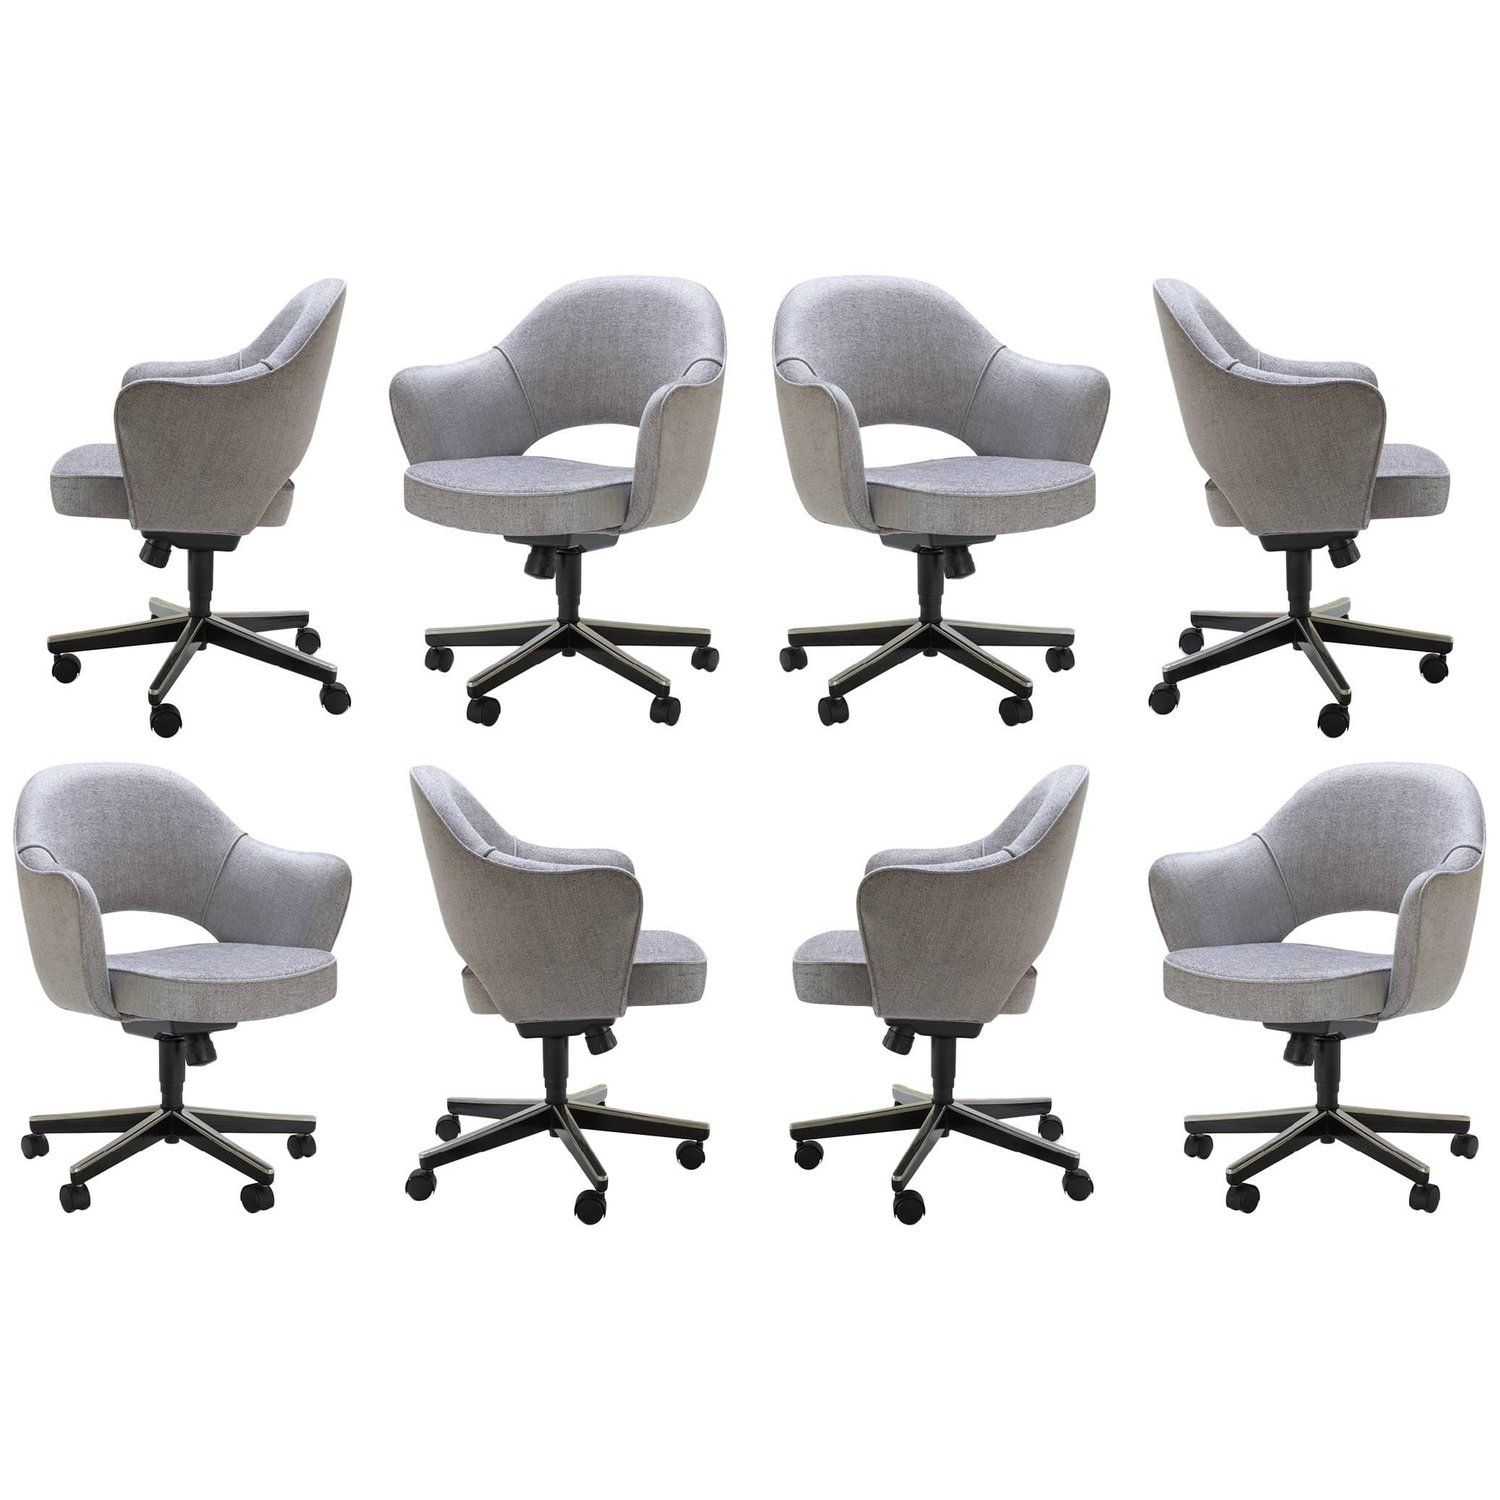 Surprising Set Of Eight Knoll Office Chairs Desk Chairs Saarinen Ibusinesslaw Wood Chair Design Ideas Ibusinesslaworg